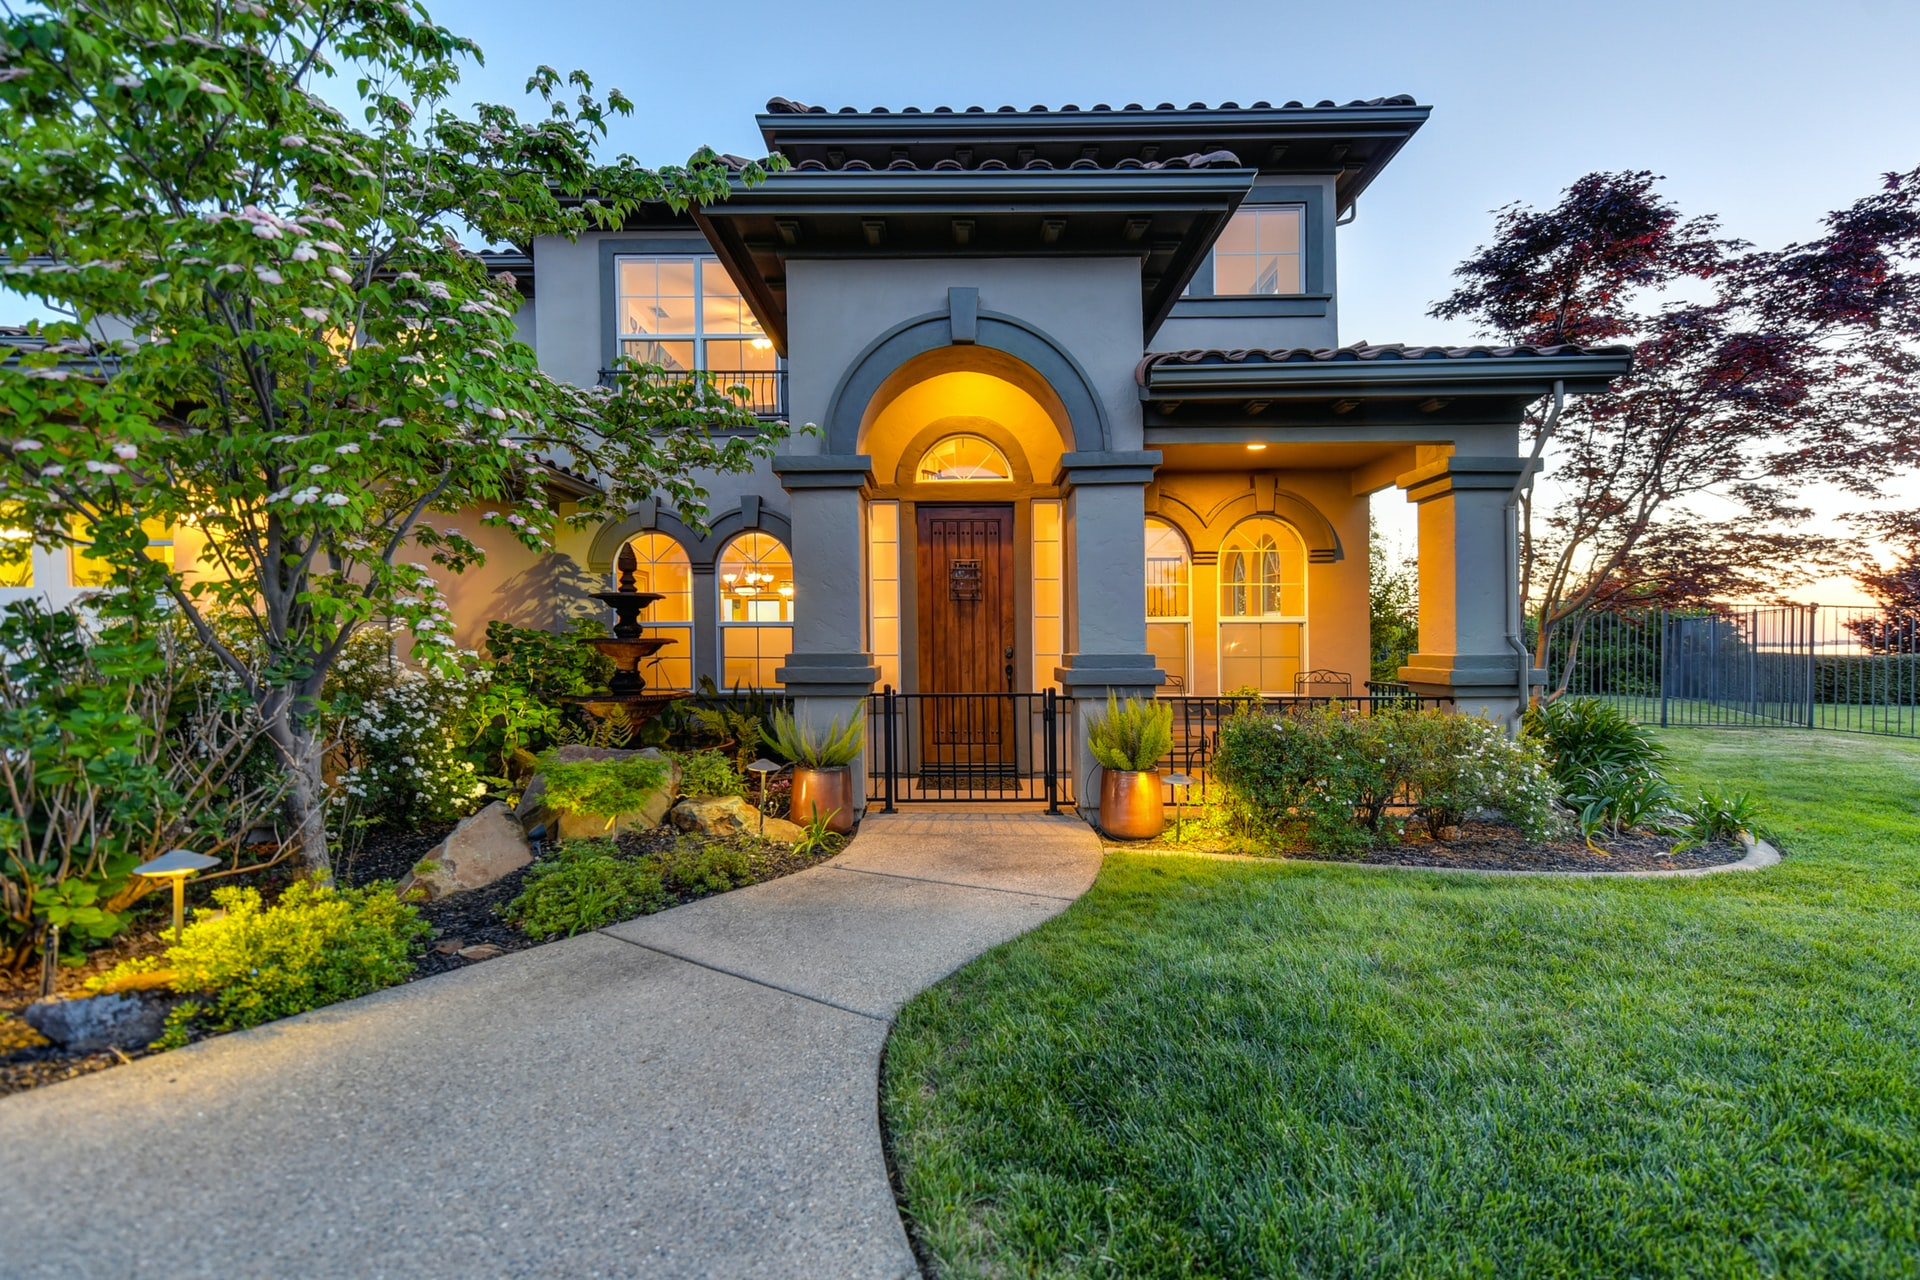 Increasing Curb Appeal To Sell Your Home